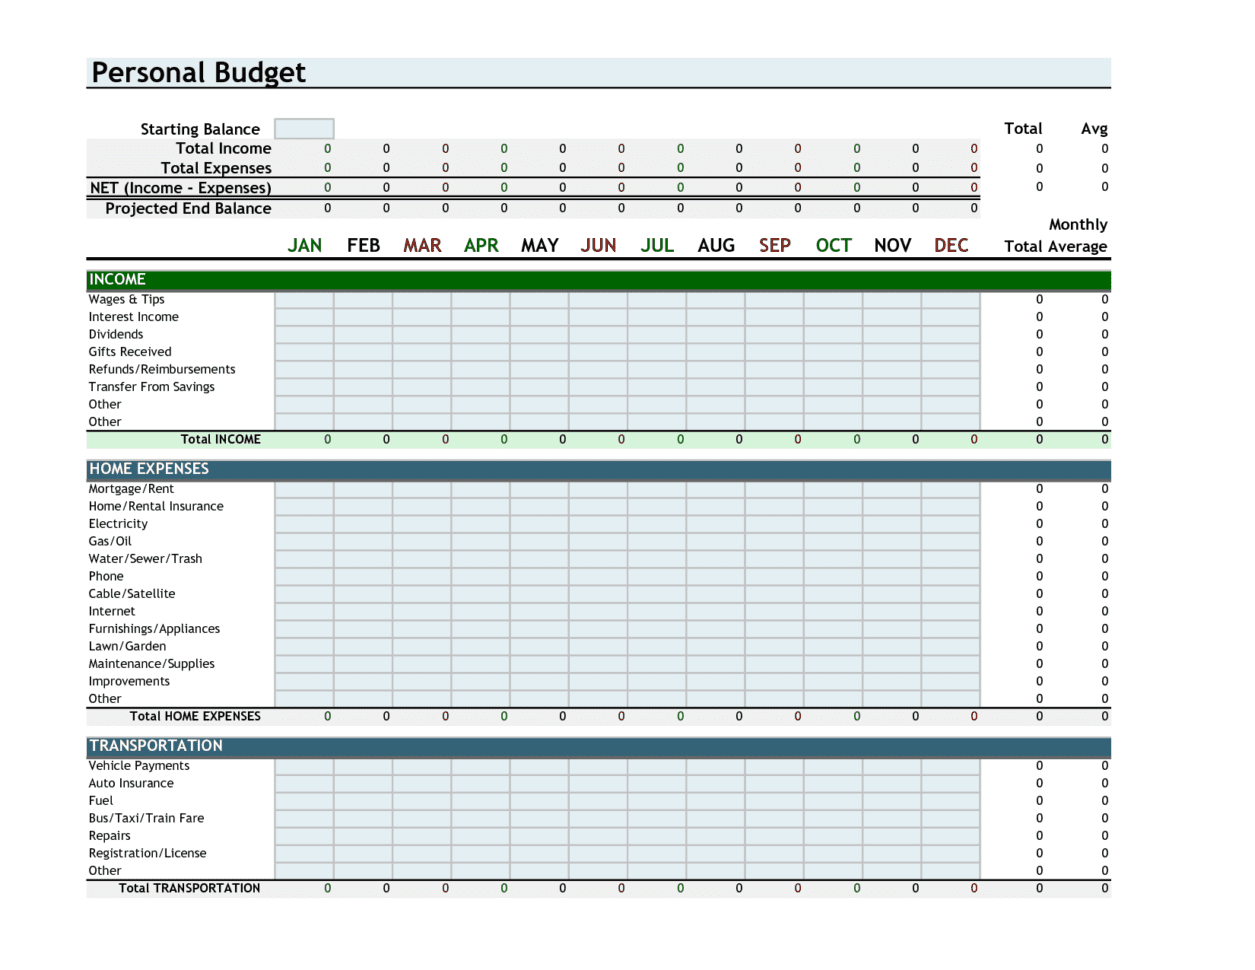 Free Personal Finance Spreadsheet Template Running Budget Template Personal Investment Plan Template Credit Card Log Spreadsheet Free Spreadsheet For Windows 10 Personal Finance Spreadsheet Template Excel Credit Card Spreadsheet Template  Running Budget Template Personal Finance Spreadsheet Template Spreadsheet Templates for Busines